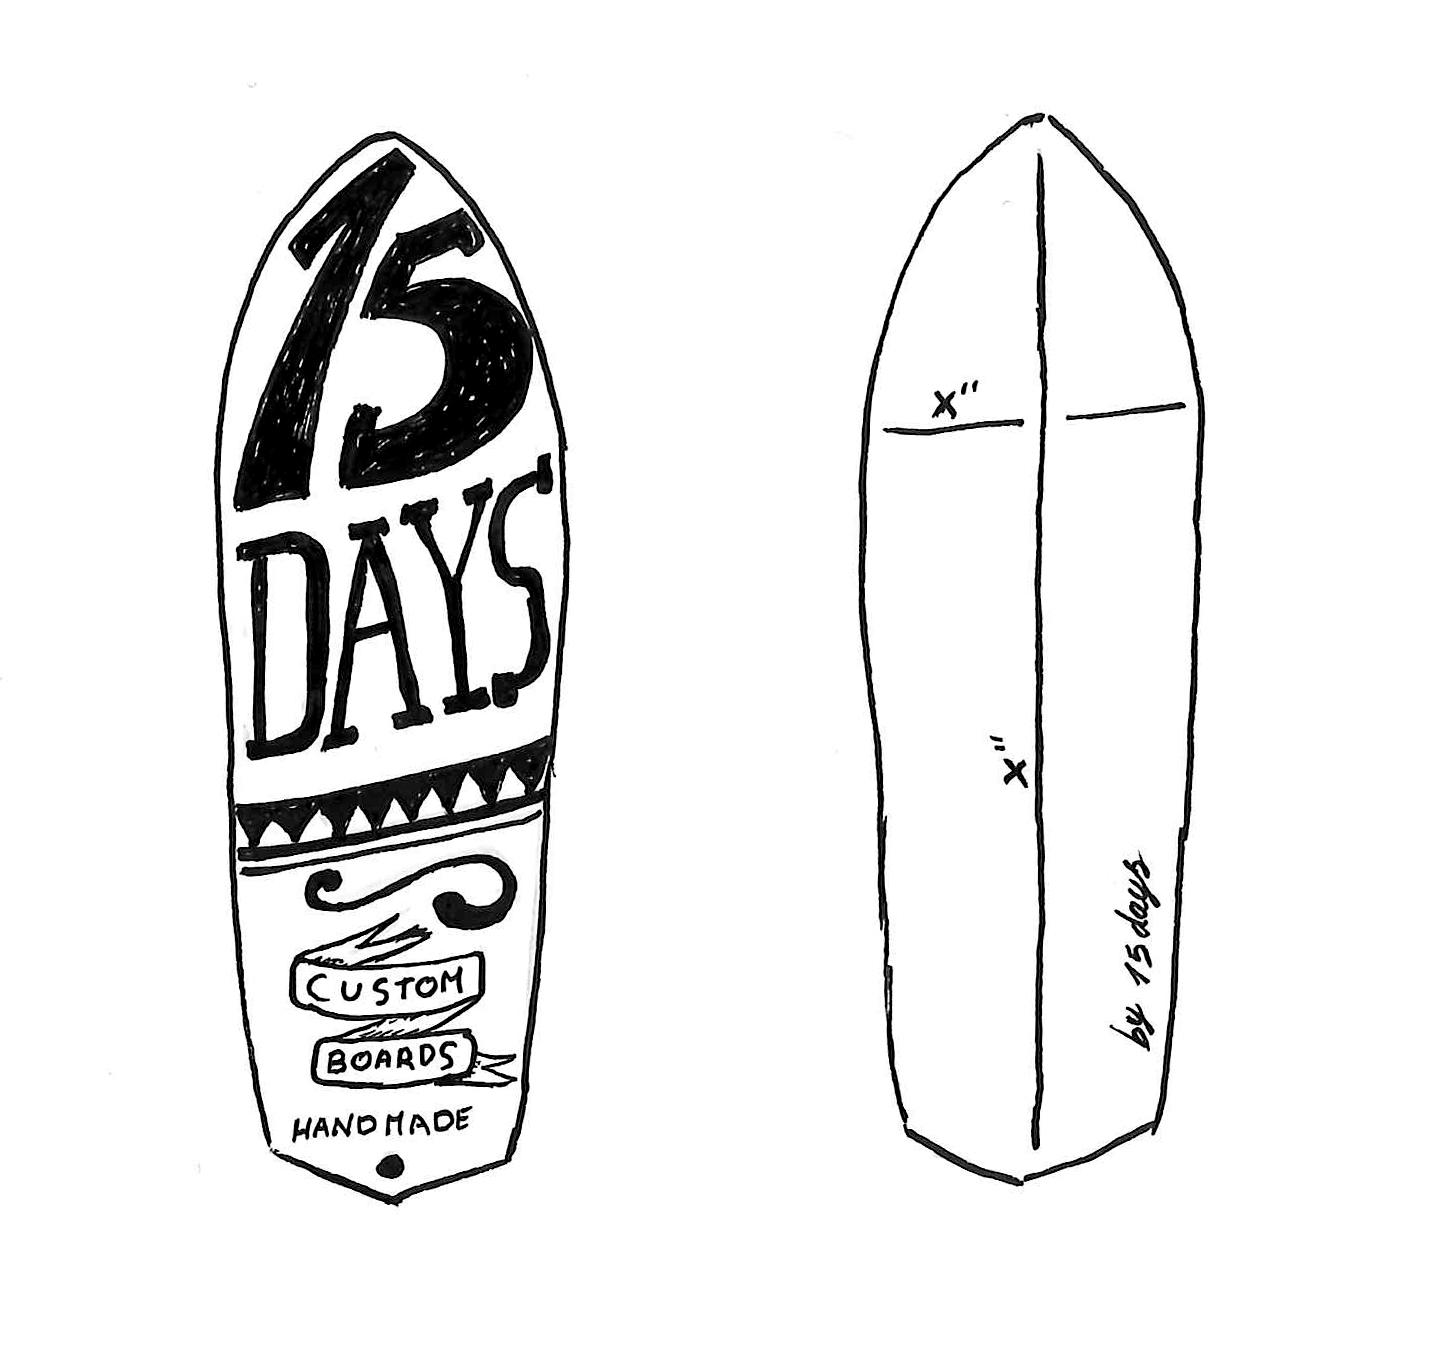 15 days boards - image 4 - student project